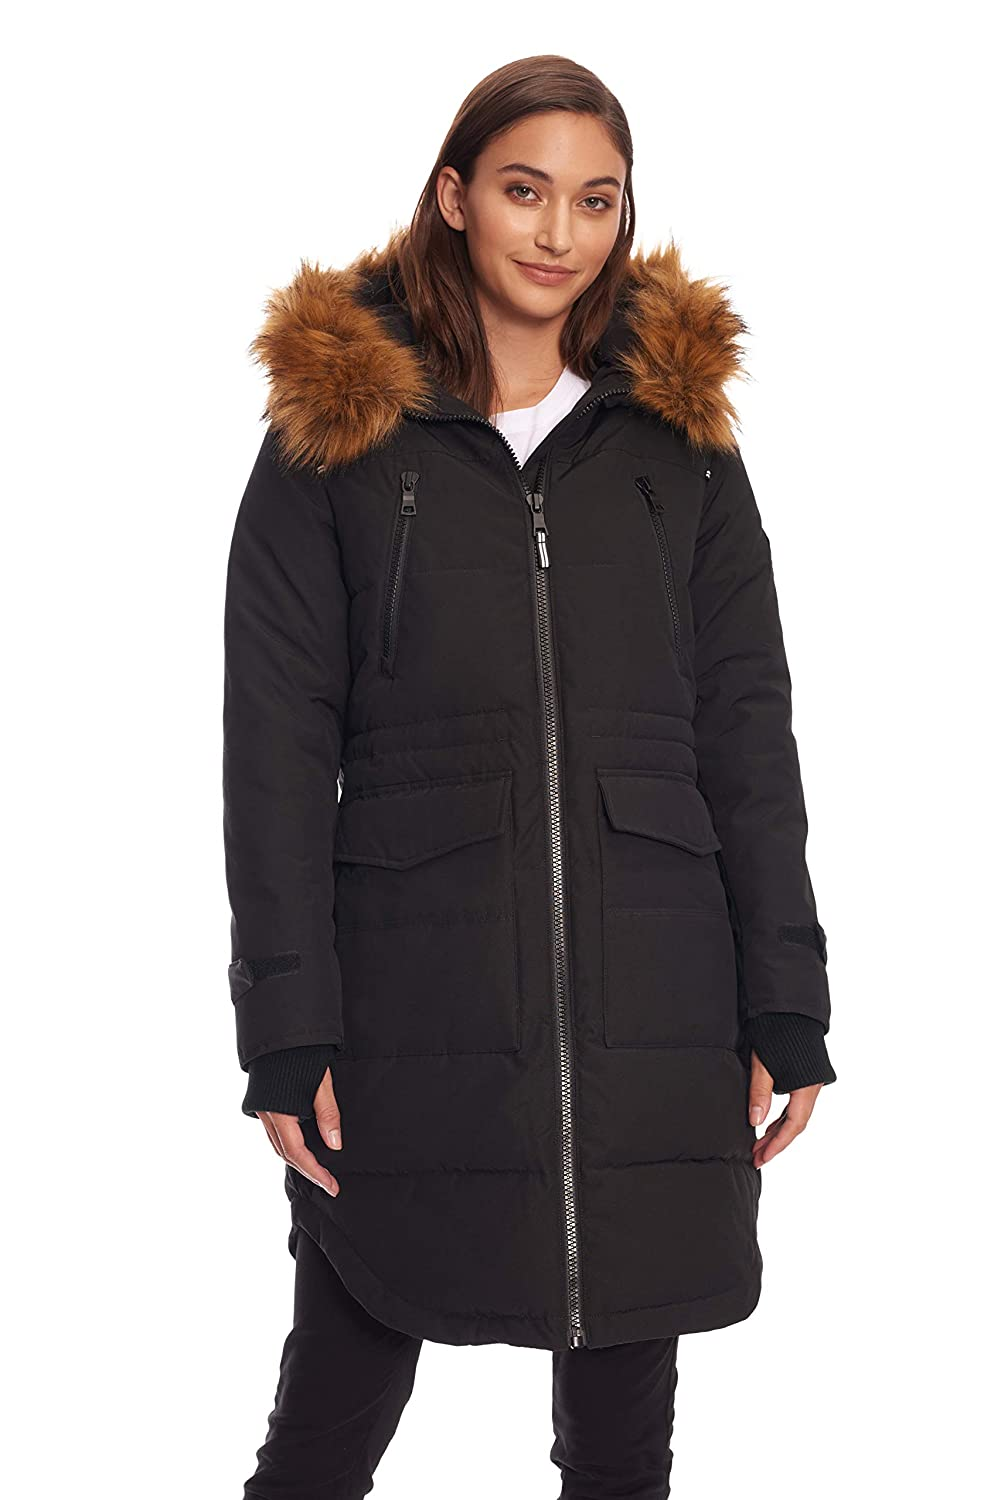 Image of Alpine North Womens Vegan Down Drawstring Winter Parka Down Jackets & Parkas